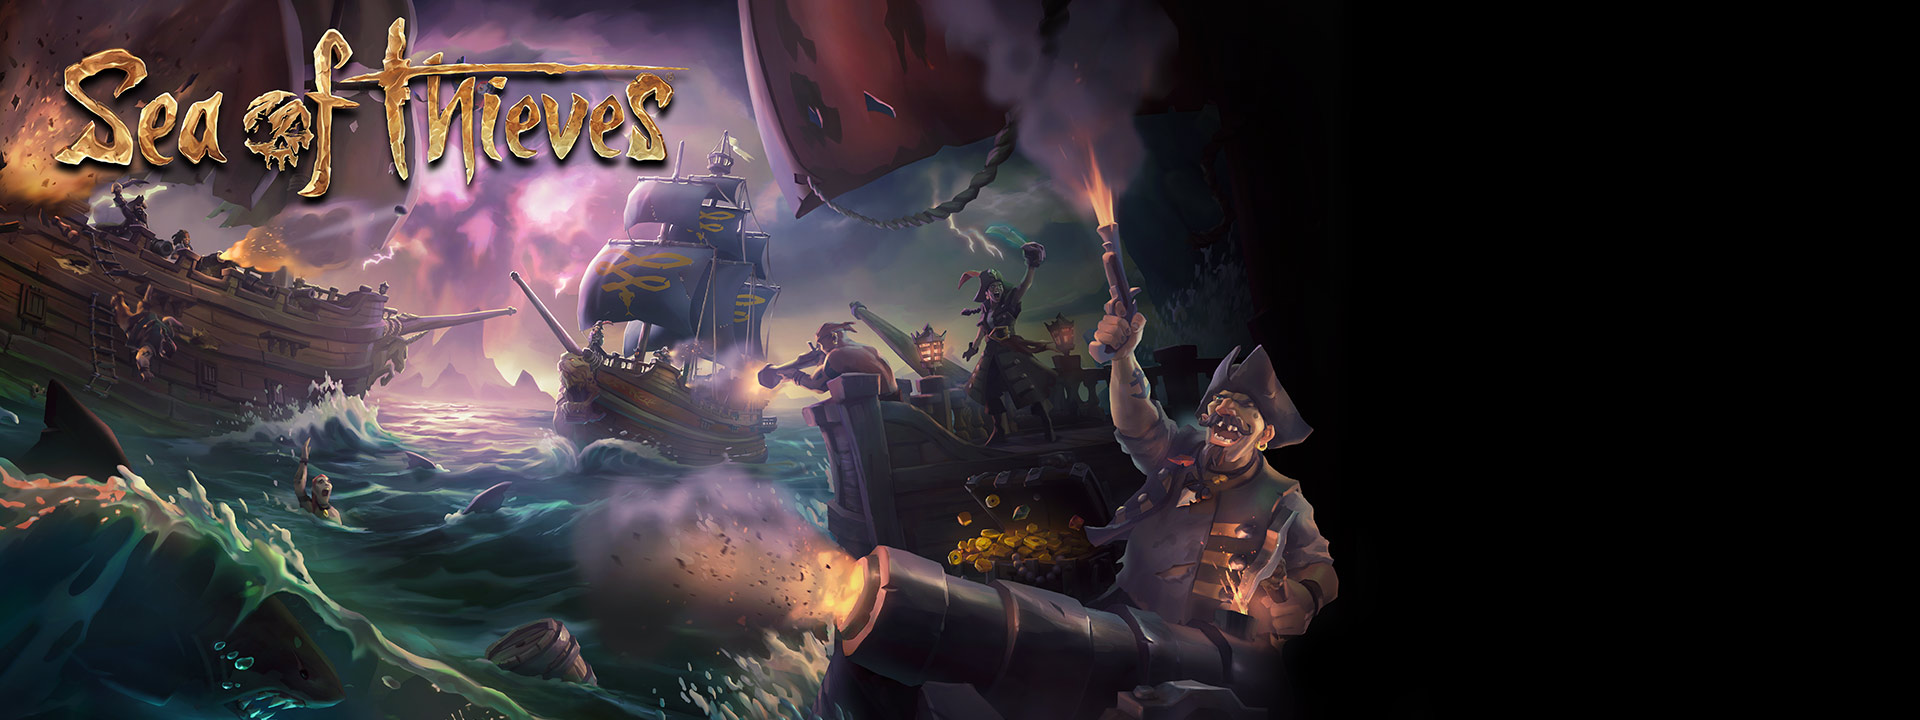 Sea of Thieves for Windows 10 - pirate ships doing battle on a stormy sea